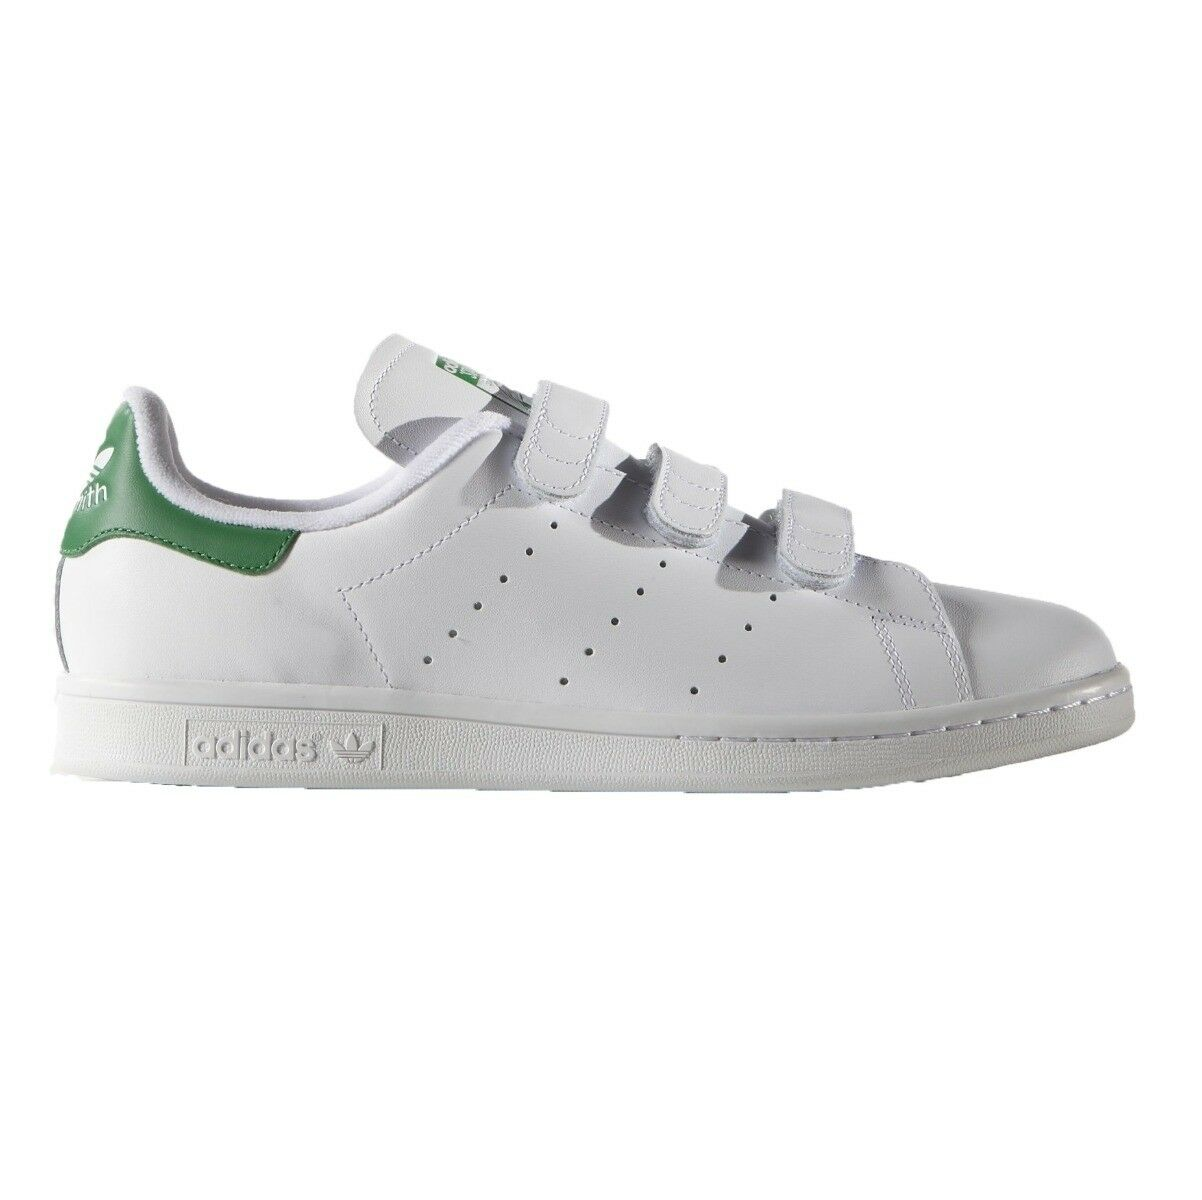 watch 2aed4 652c0 Adidas Stan Smith Trainer Mens schuhe Weiß Grün Trainer Trainer Trainer  upto - New c361ab